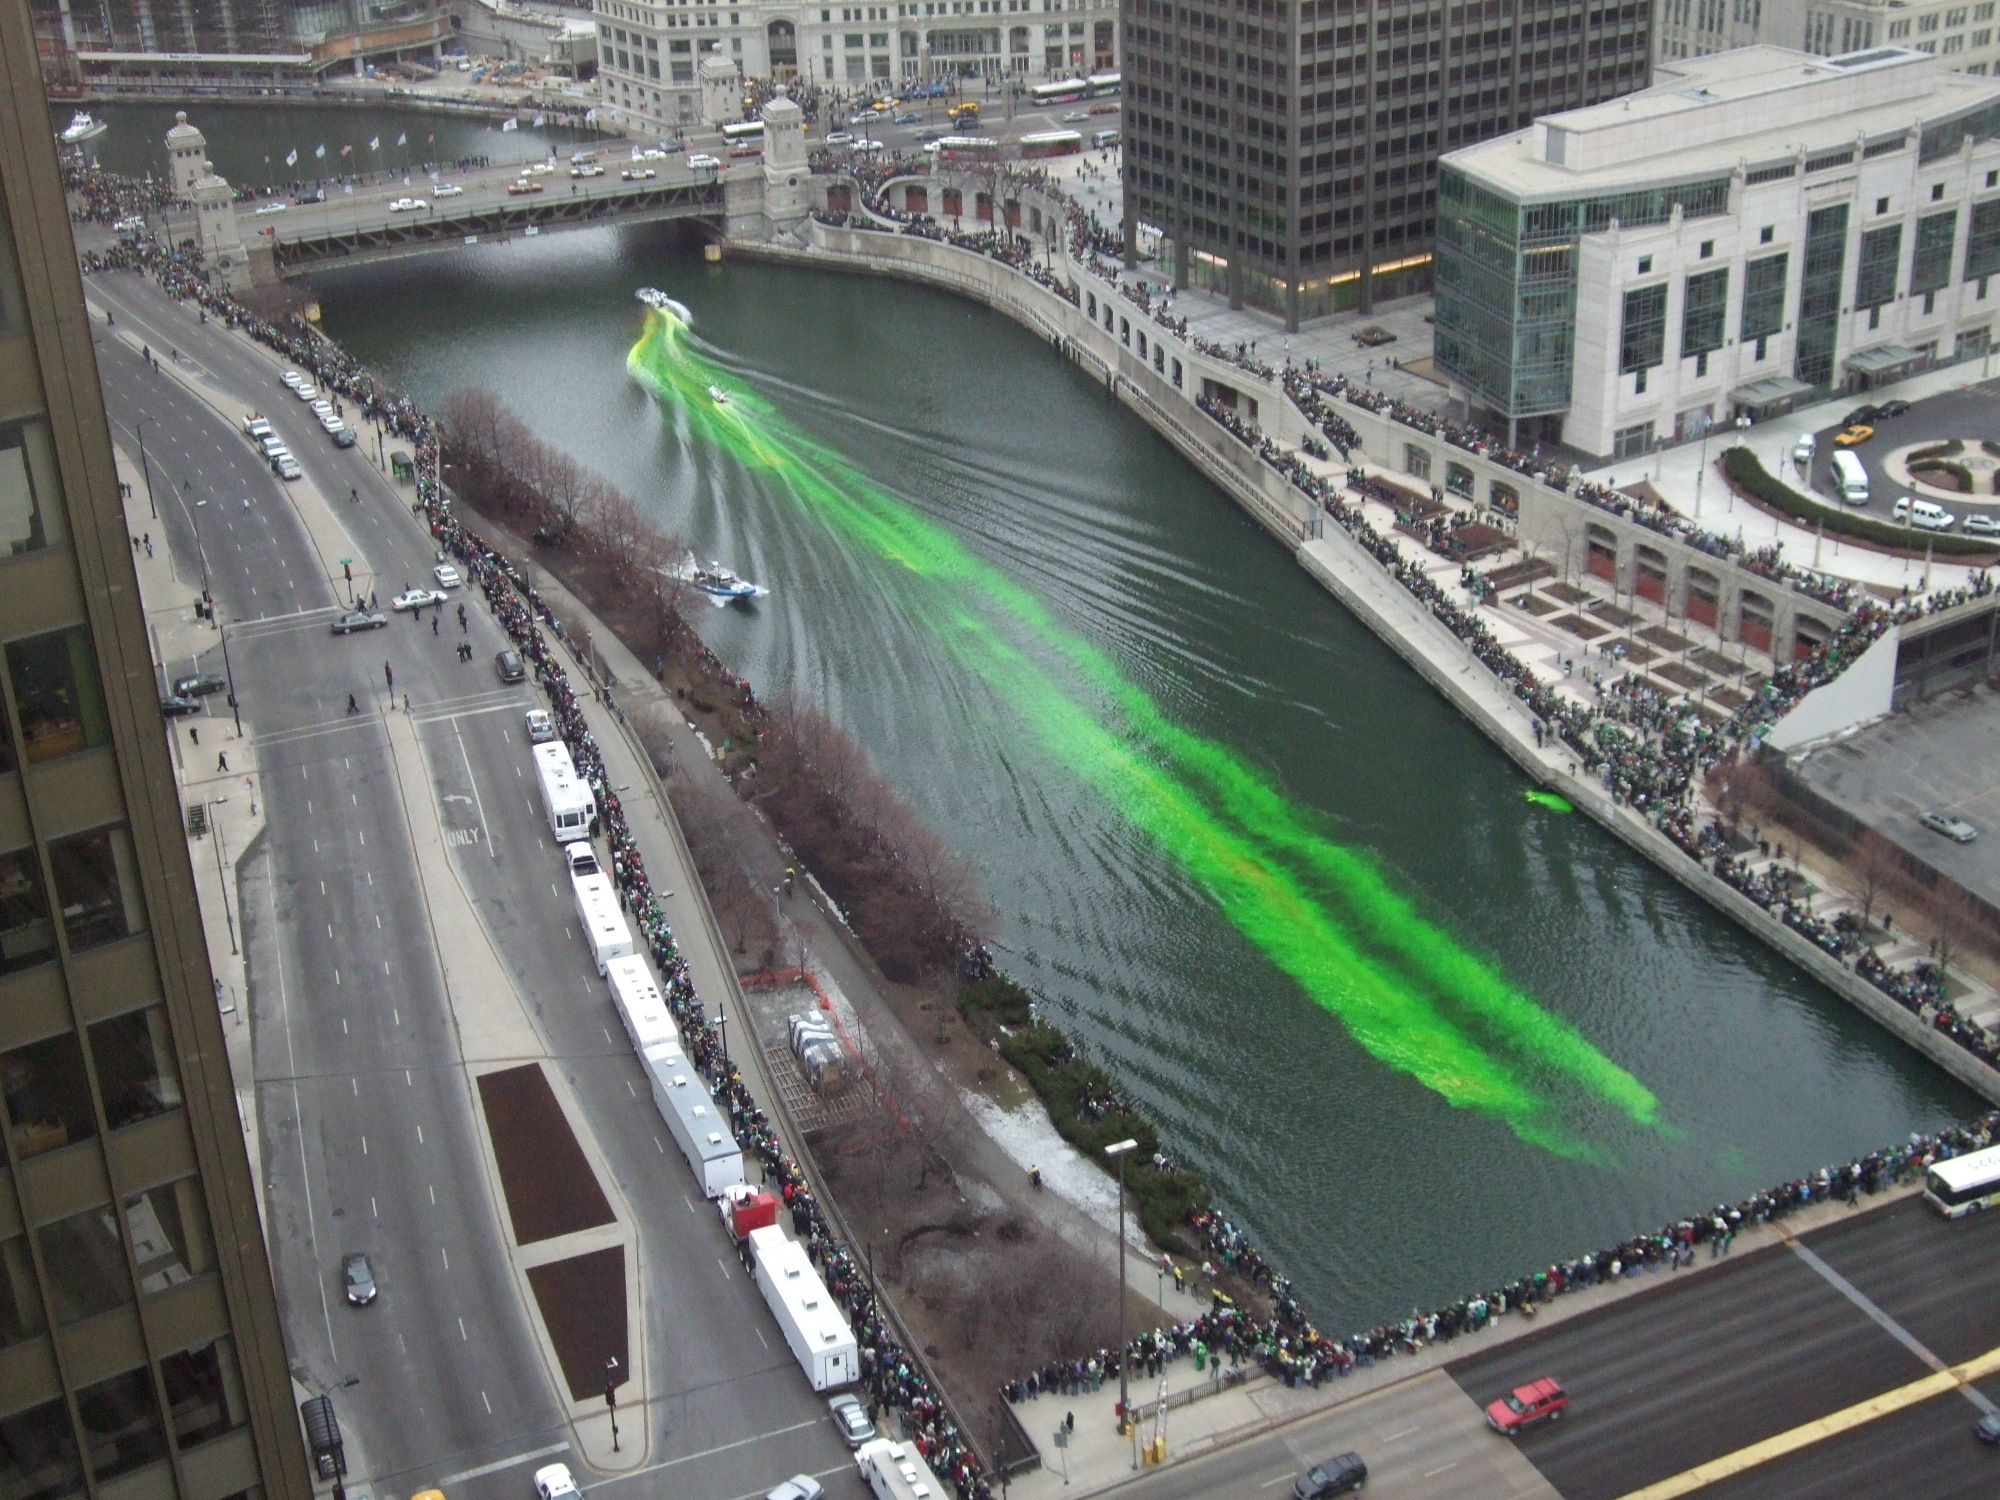 chicago-river-green-dye-st-patricks-day-01